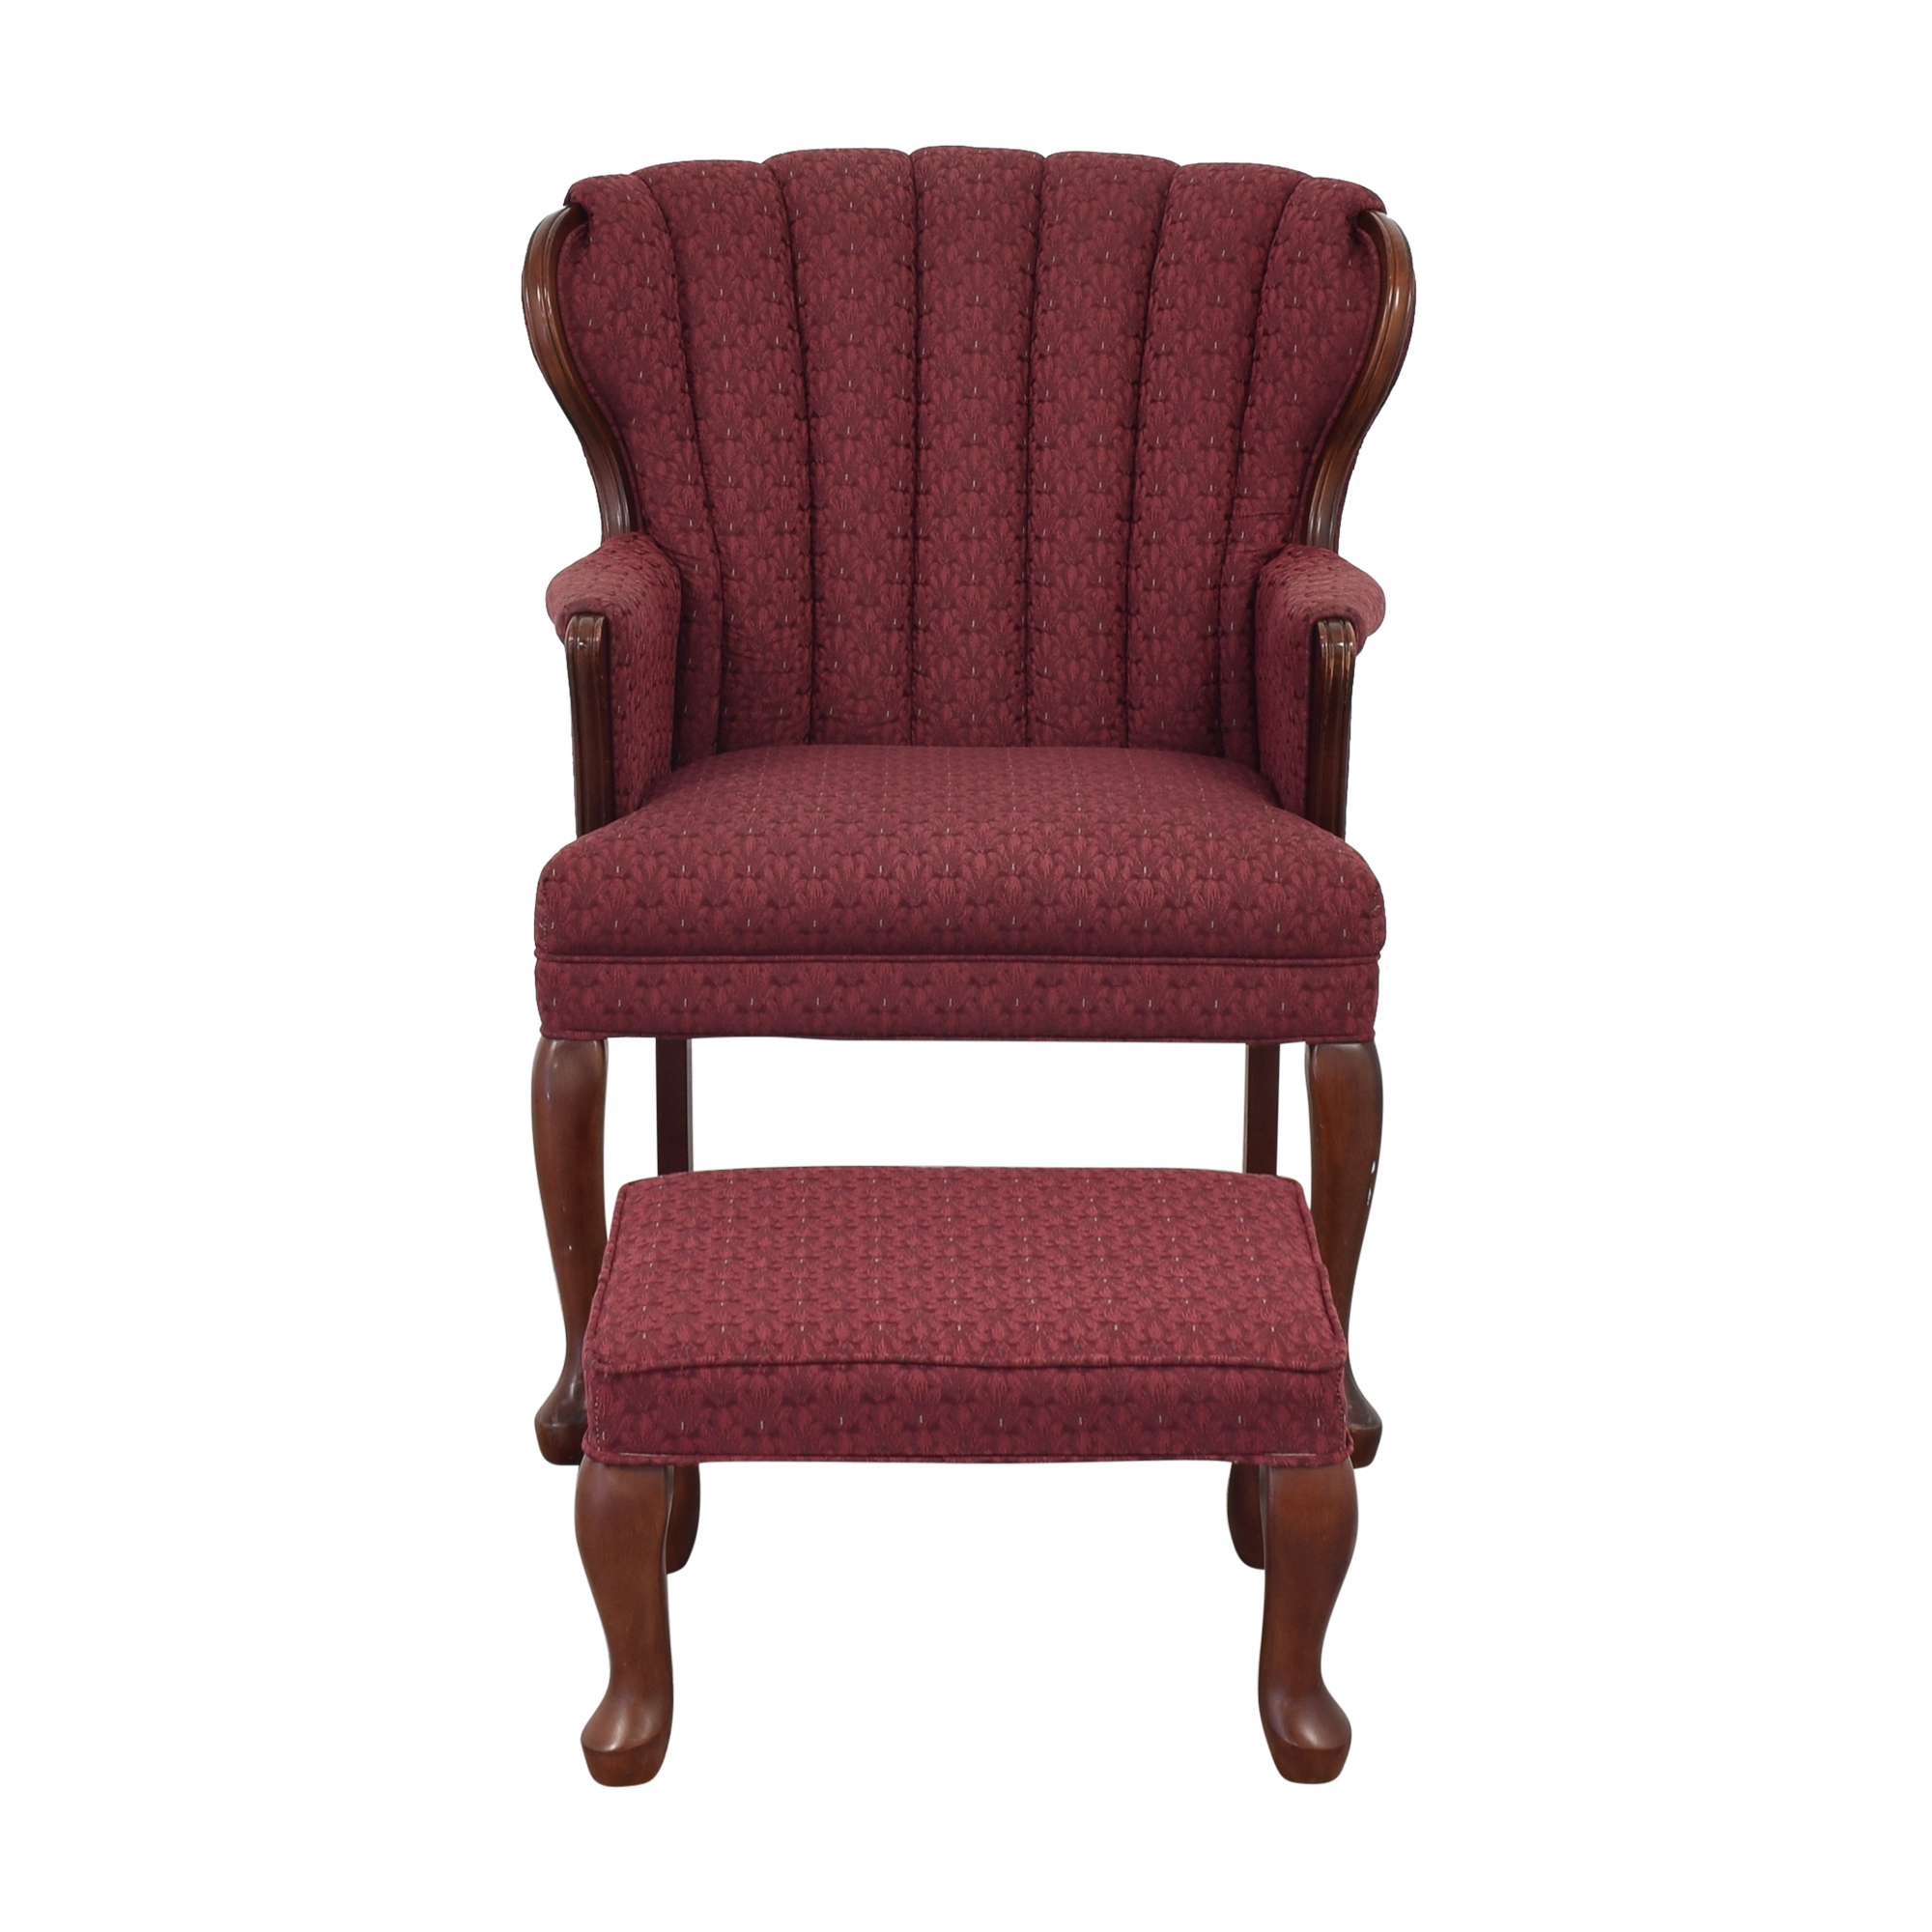 Best Chairs Queen Anne Scallop-Back Chair and Ottoman sale